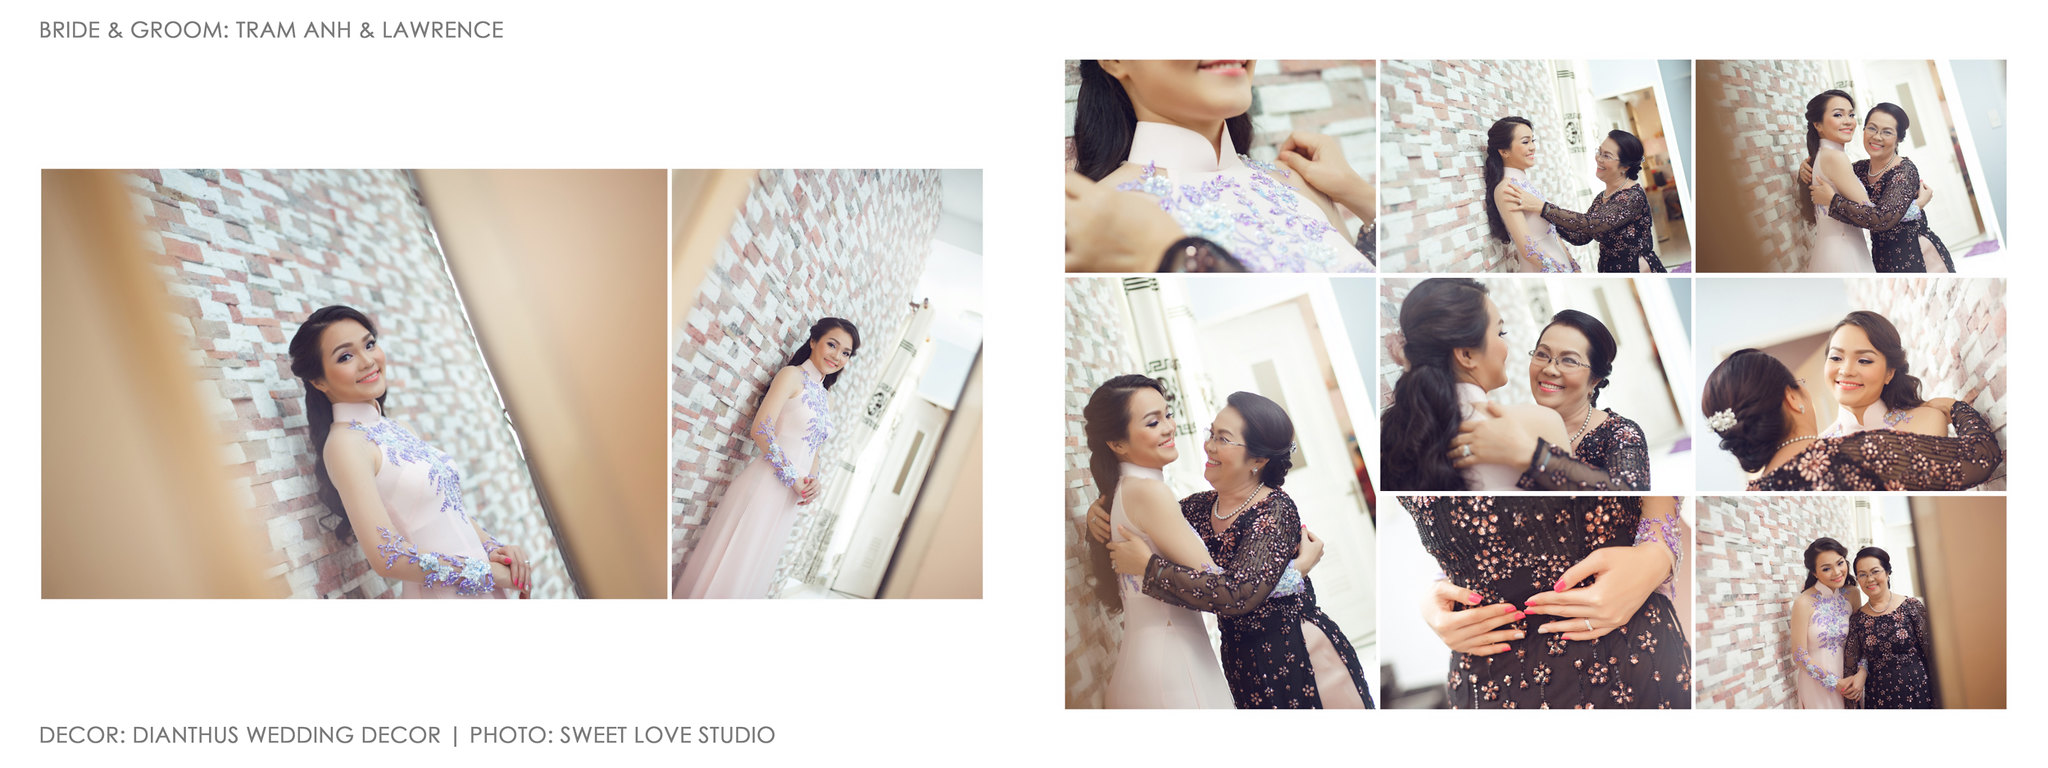 Chup-anh-cuoi-phong-su-Tram-Anh-Lawrence-04